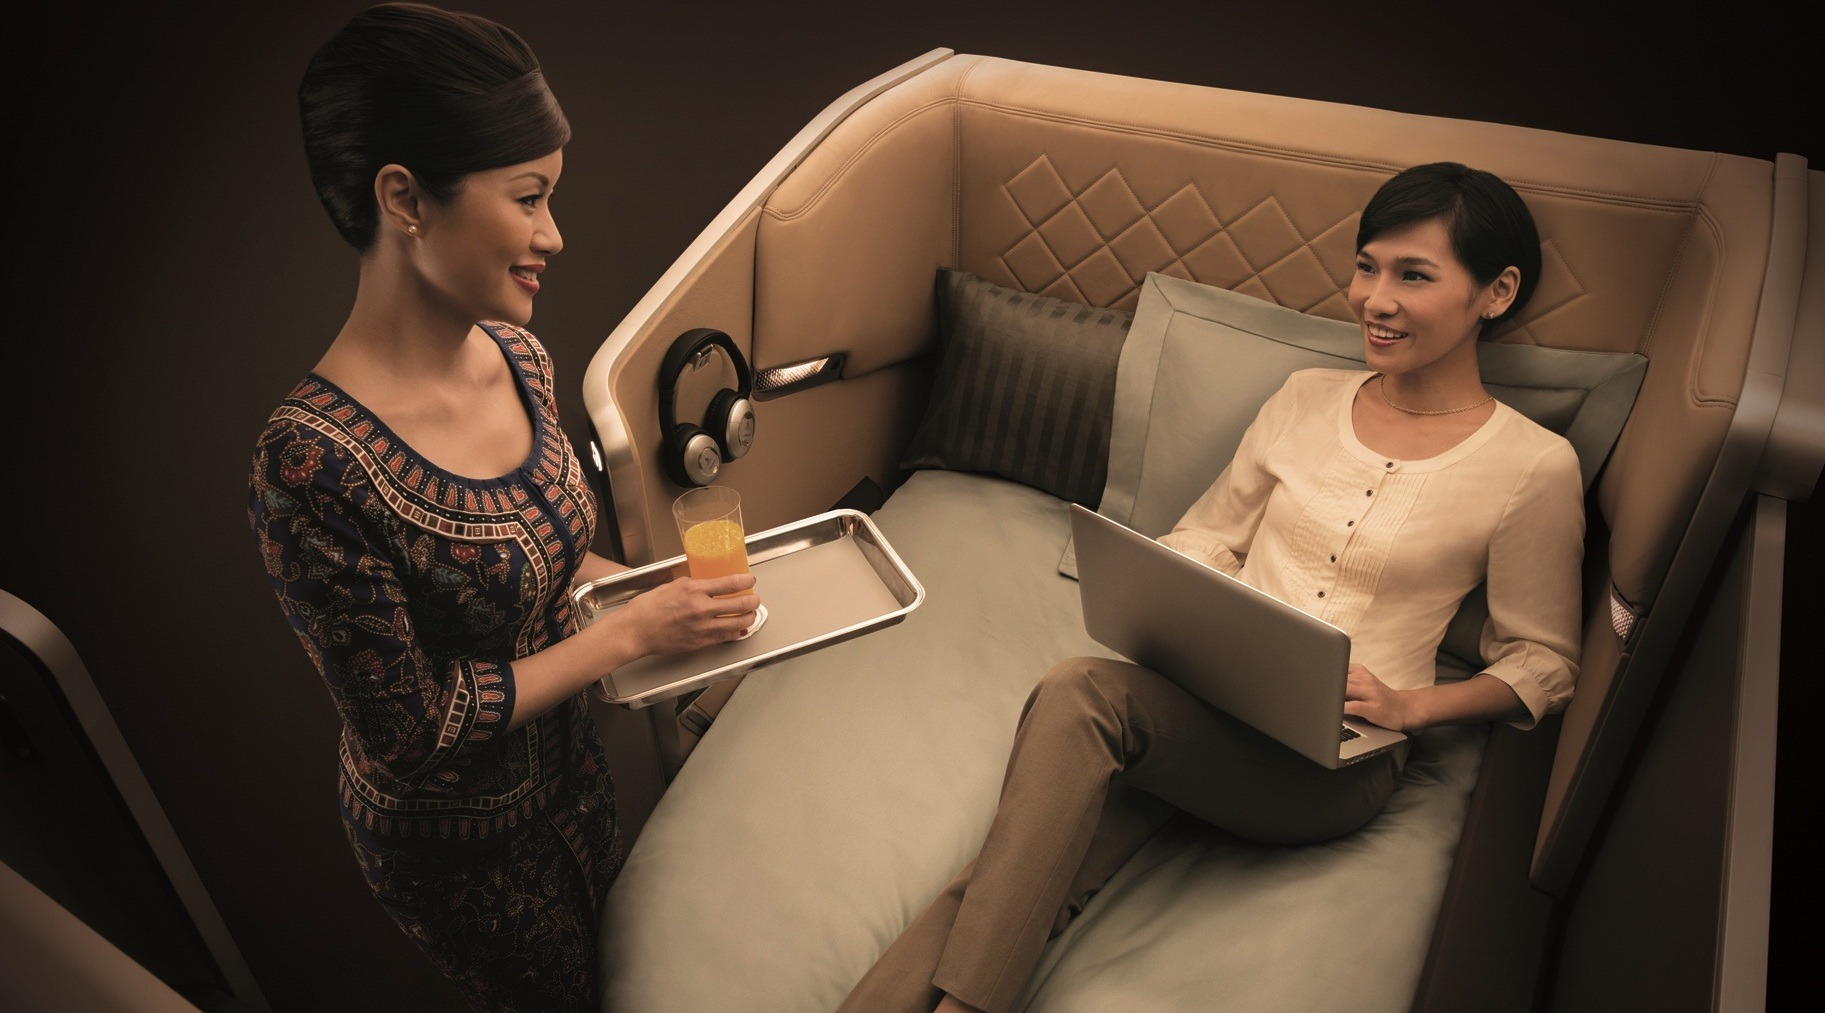 Singapore Airlines Business Class onboard serwis